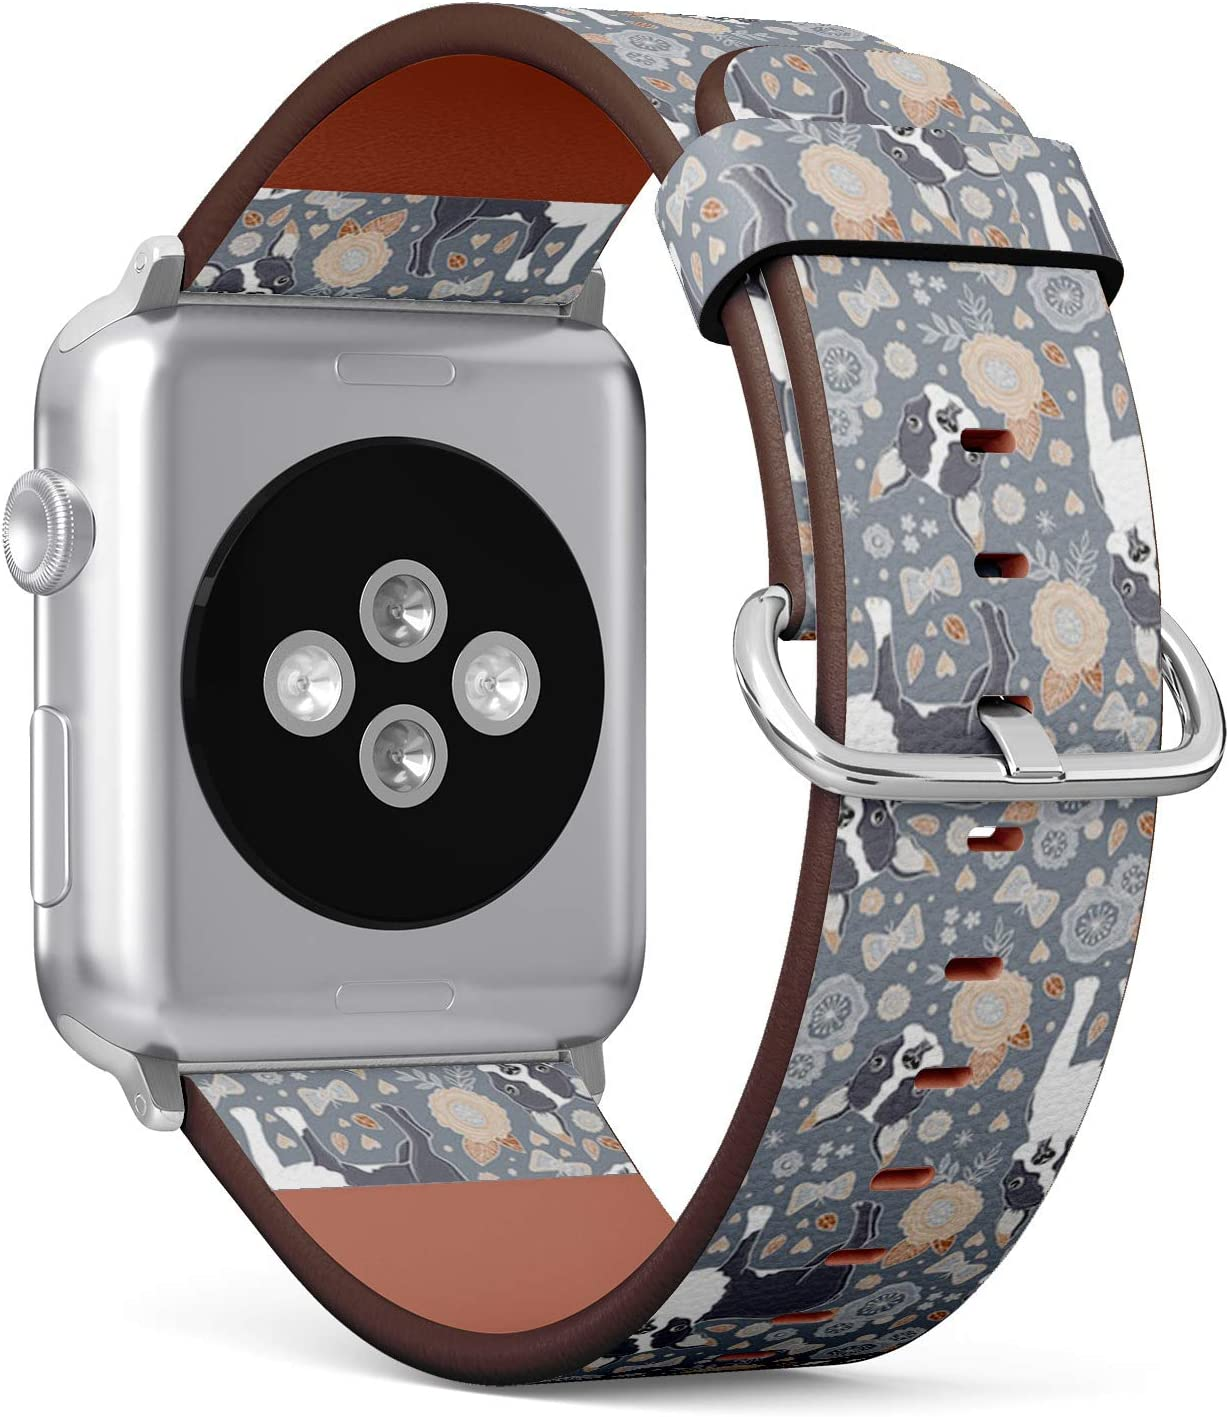 Compatible with Apple Watch Series 6/5/4/3/2/1 (Big Version 42/44 mm) Leather Wristband Bracelet Replacement Accessory Band + Adapters - Boston Terrier Beautiful Flowers